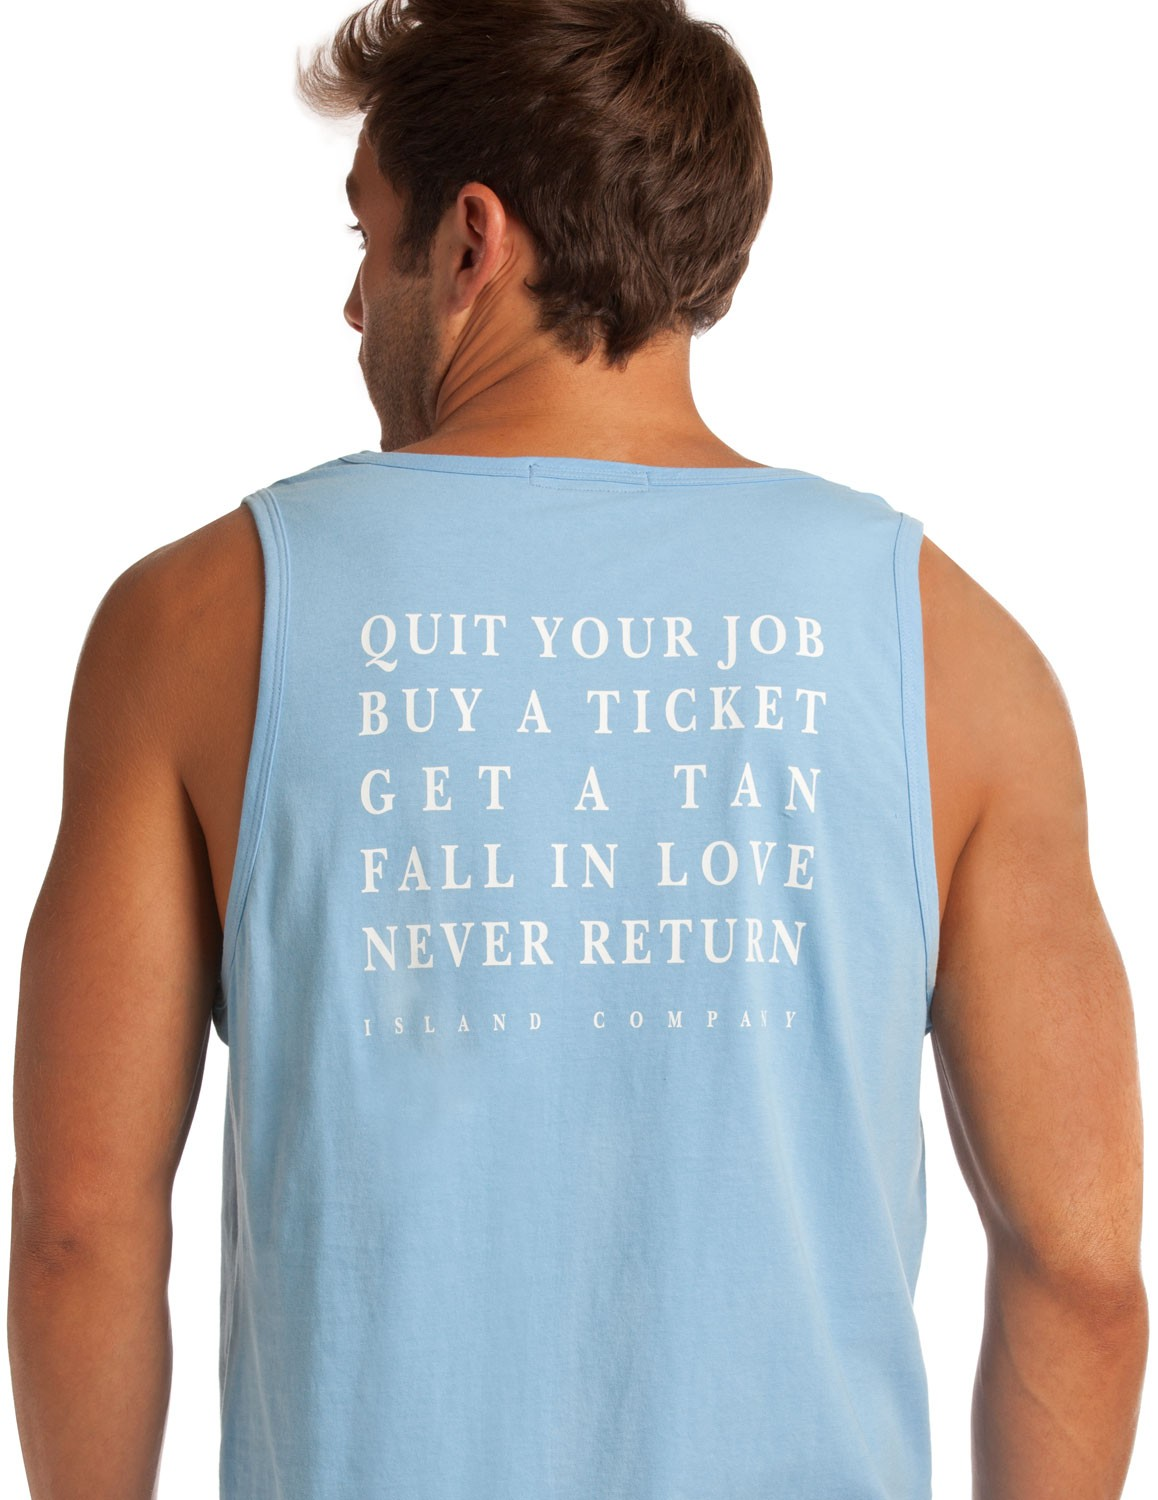 Men's Azul Blue QYJ Tank - Quit Your Job, Buy a Ticket |Island Company